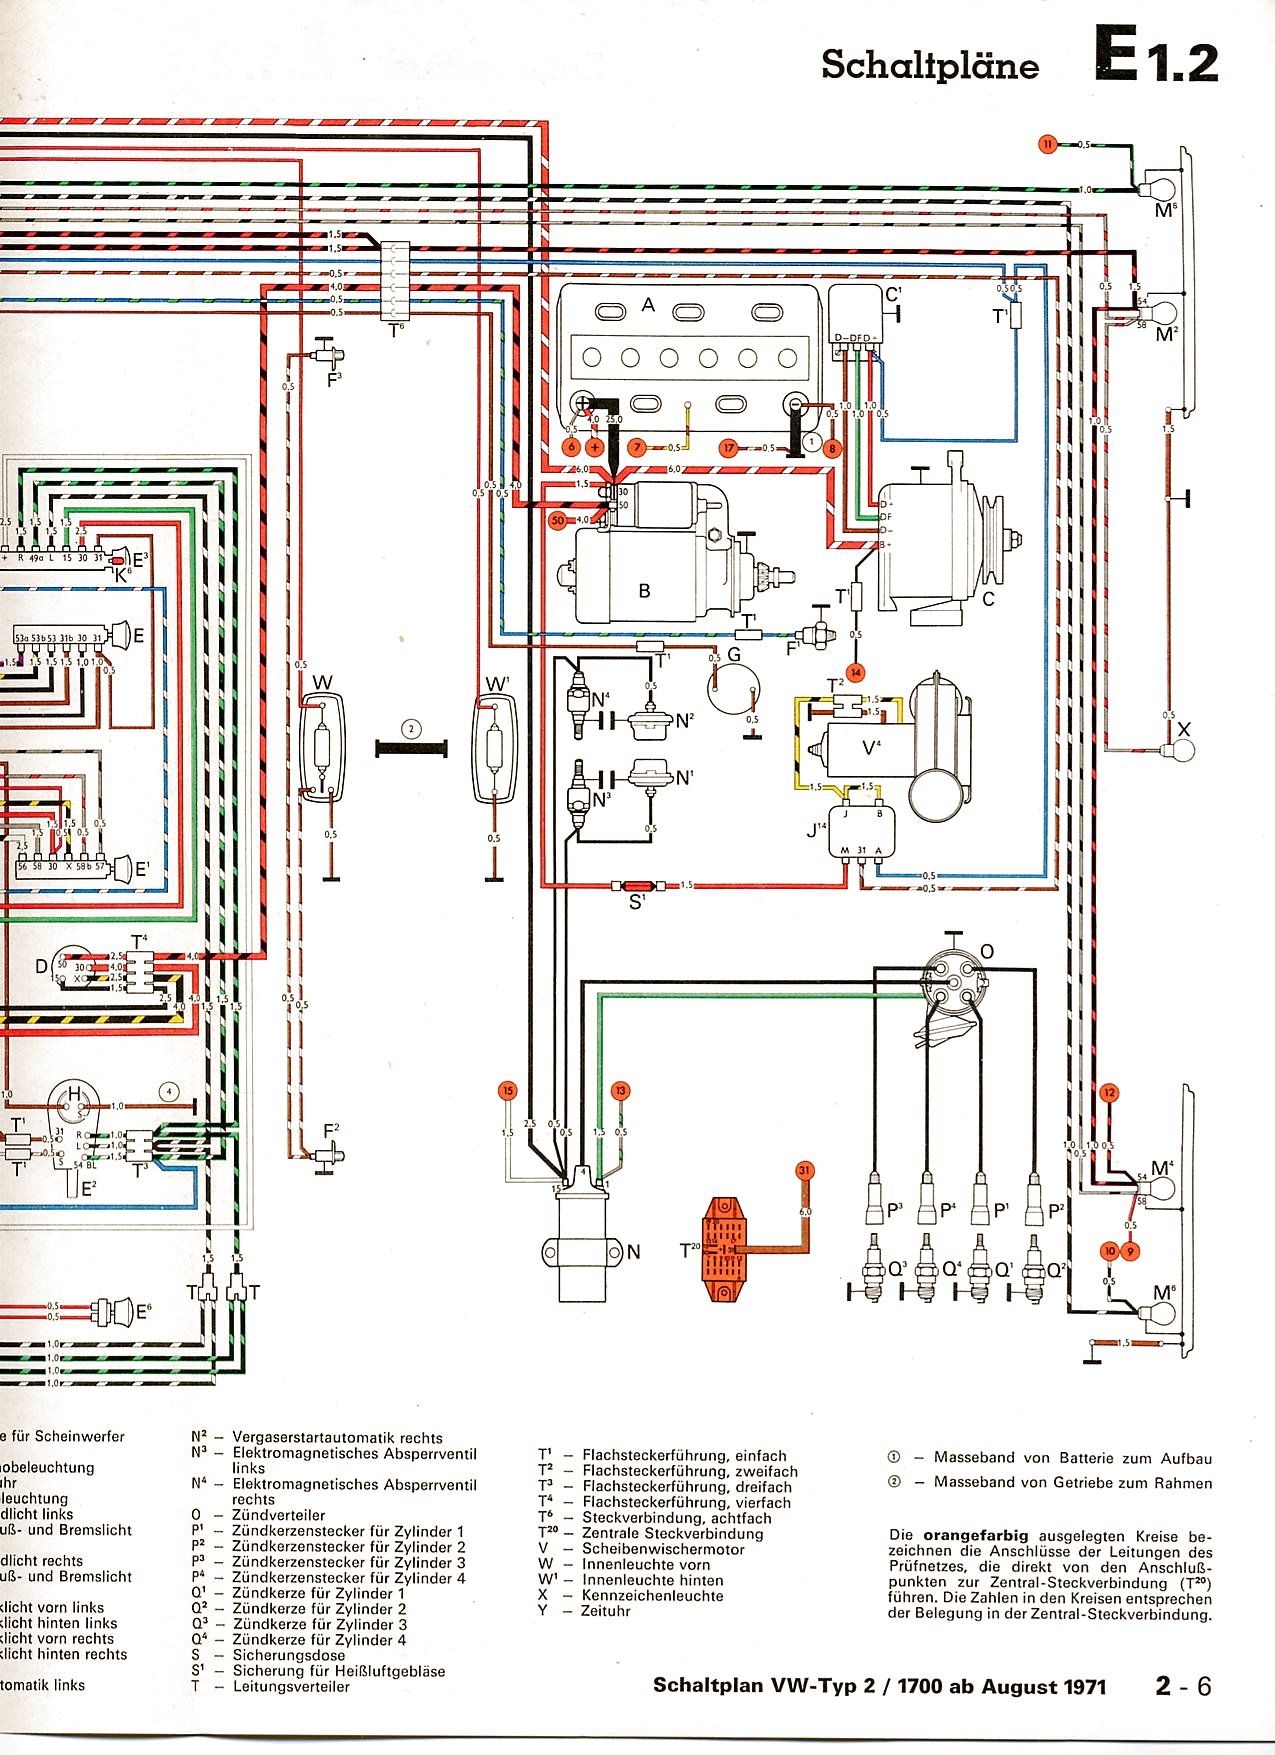 VW Wiring Diagrams on jaguar s type wiring diagram, vw type 1 maintenance, vw type 1 suspension, vw type 1 fuel pump, vw type 1 fuel gauge, vw type 1 exhaust, vw type 1 air conditioning, vw type 1 generator, vw type 1 fan belt, vw type 1 dimensions, vw type 1 body, vw type 1 flywheel, vw type 1 starter, vw type 1 brakes, vw type 1 wheels, vw type 1 frame, volkswagen type 3 wiring diagram, vw type 1 torque specs,